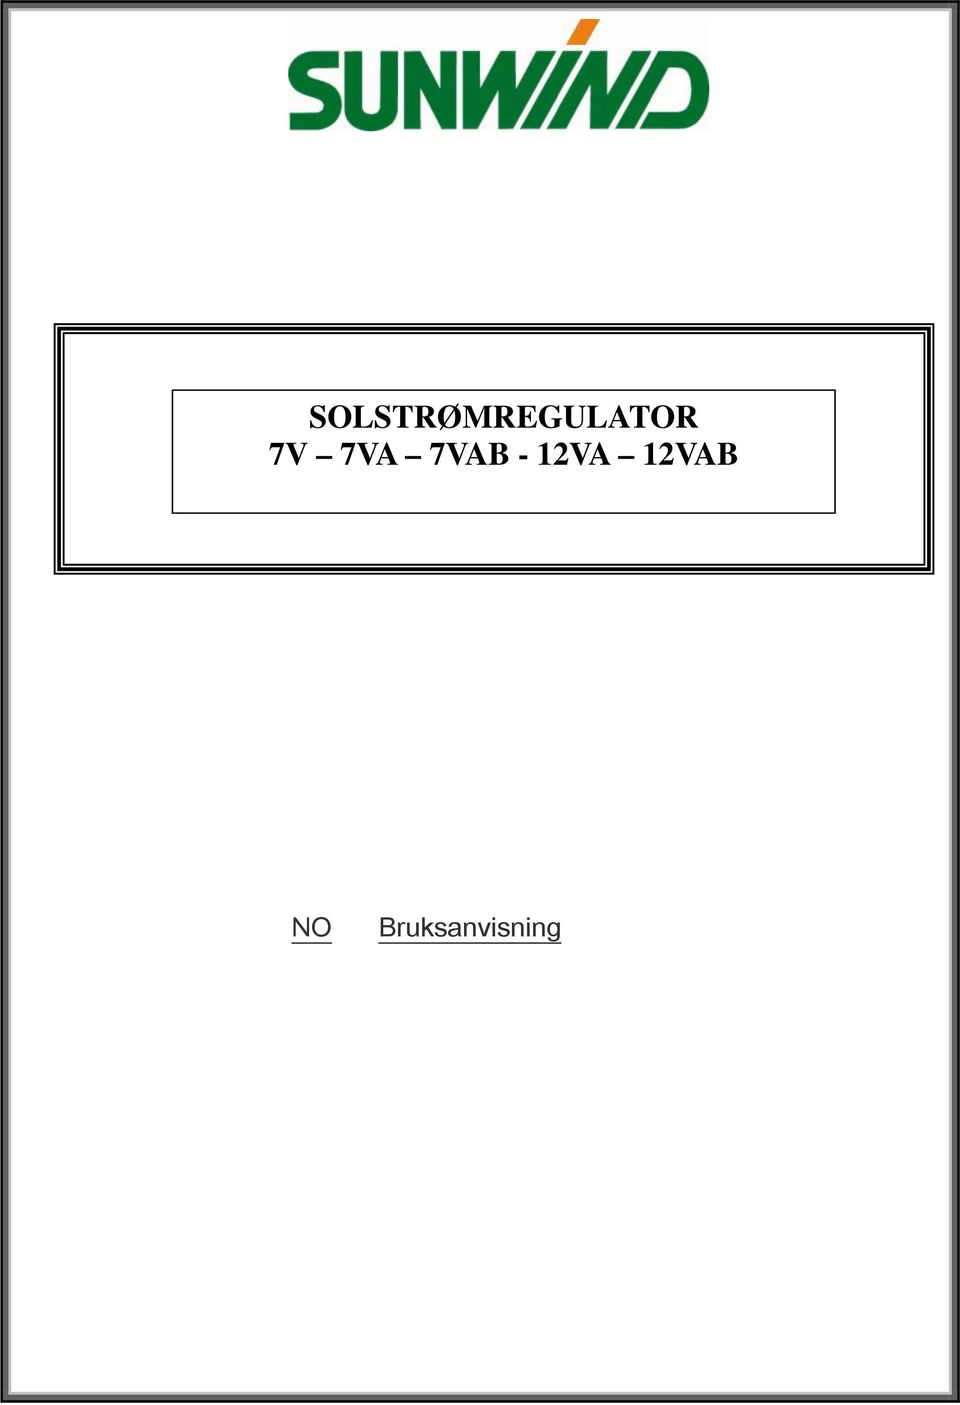 SOLSTRØMREGULATOR 7V